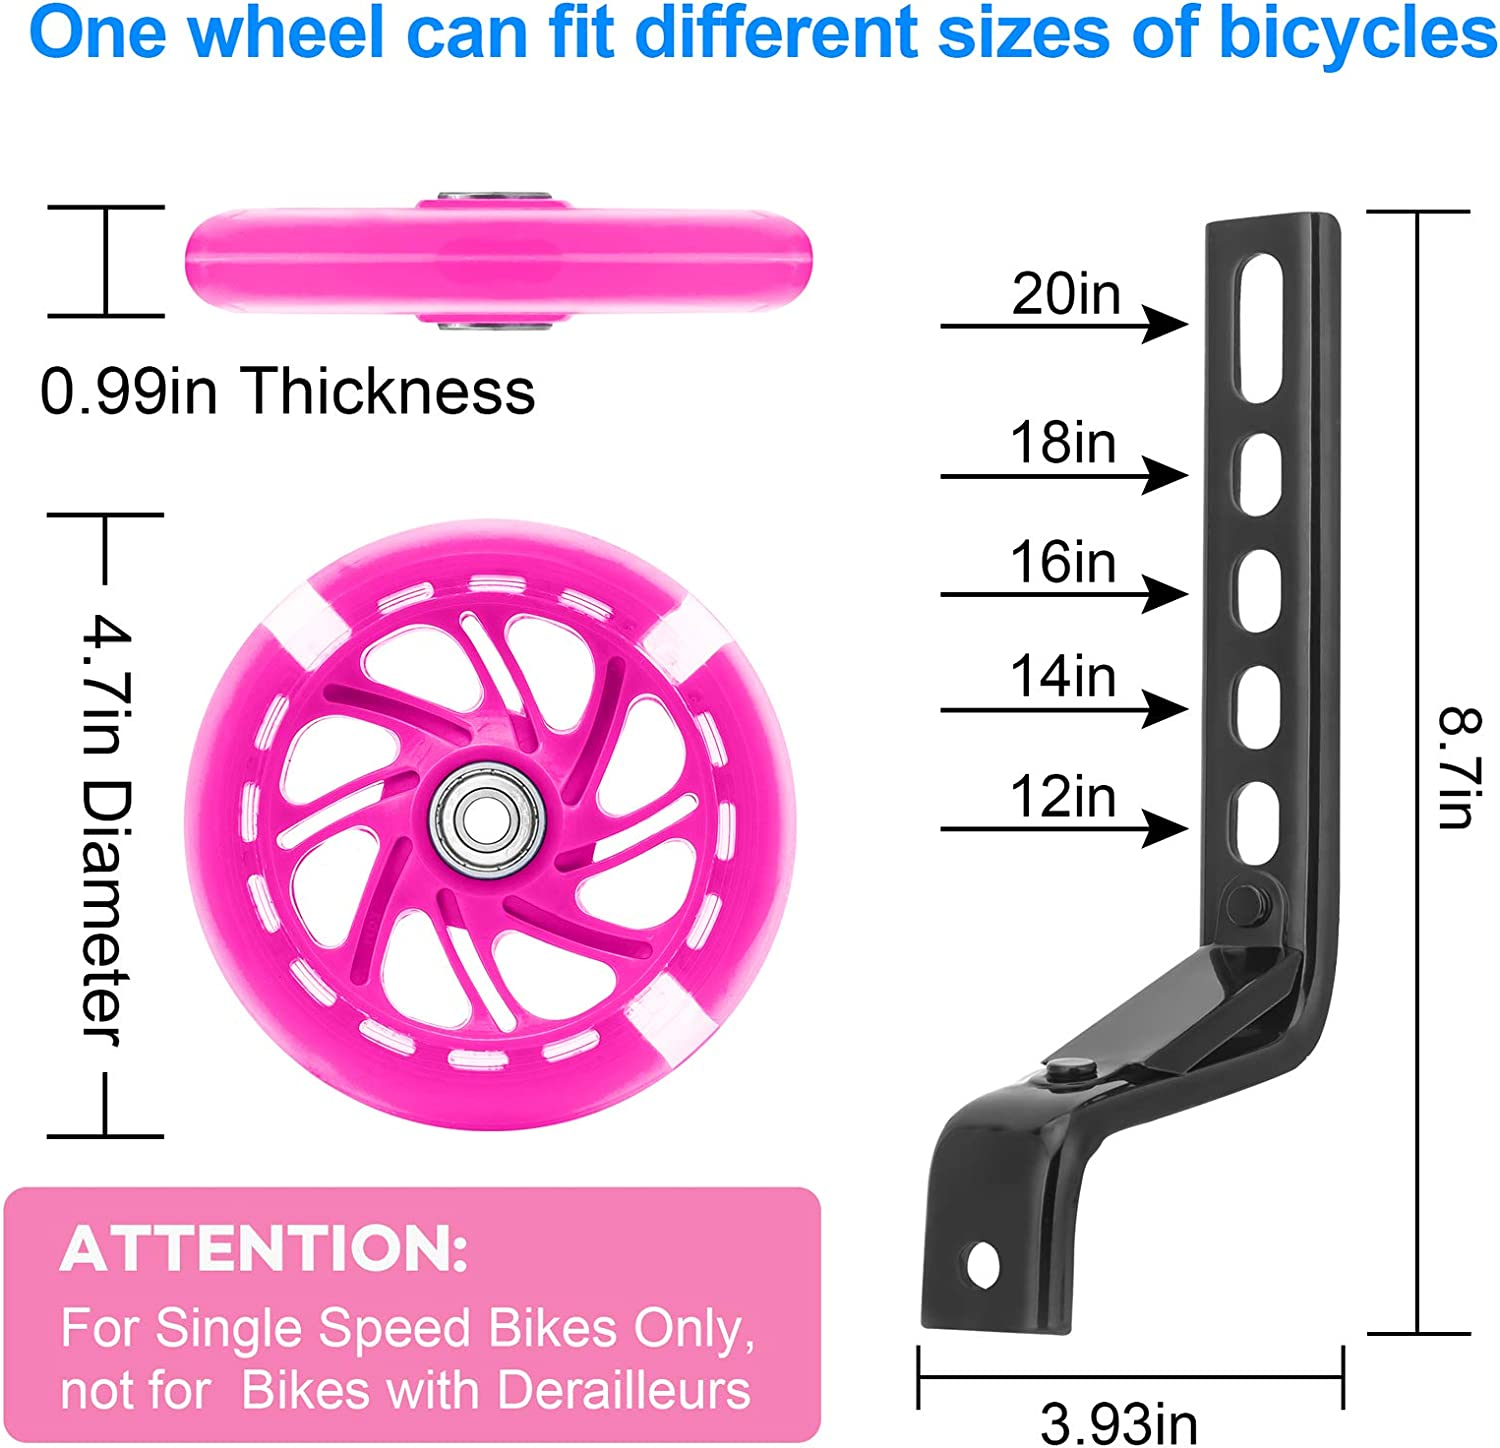 A Roll of Reflective Tape for Boys and Girls LAVEVE Training Wheels for Kids Bike Flash Mute Big Wheel Bicycle Stabilizers Mounted Kit for 12 14 16 18 20 inch Kids Bike Including Mounted Kit